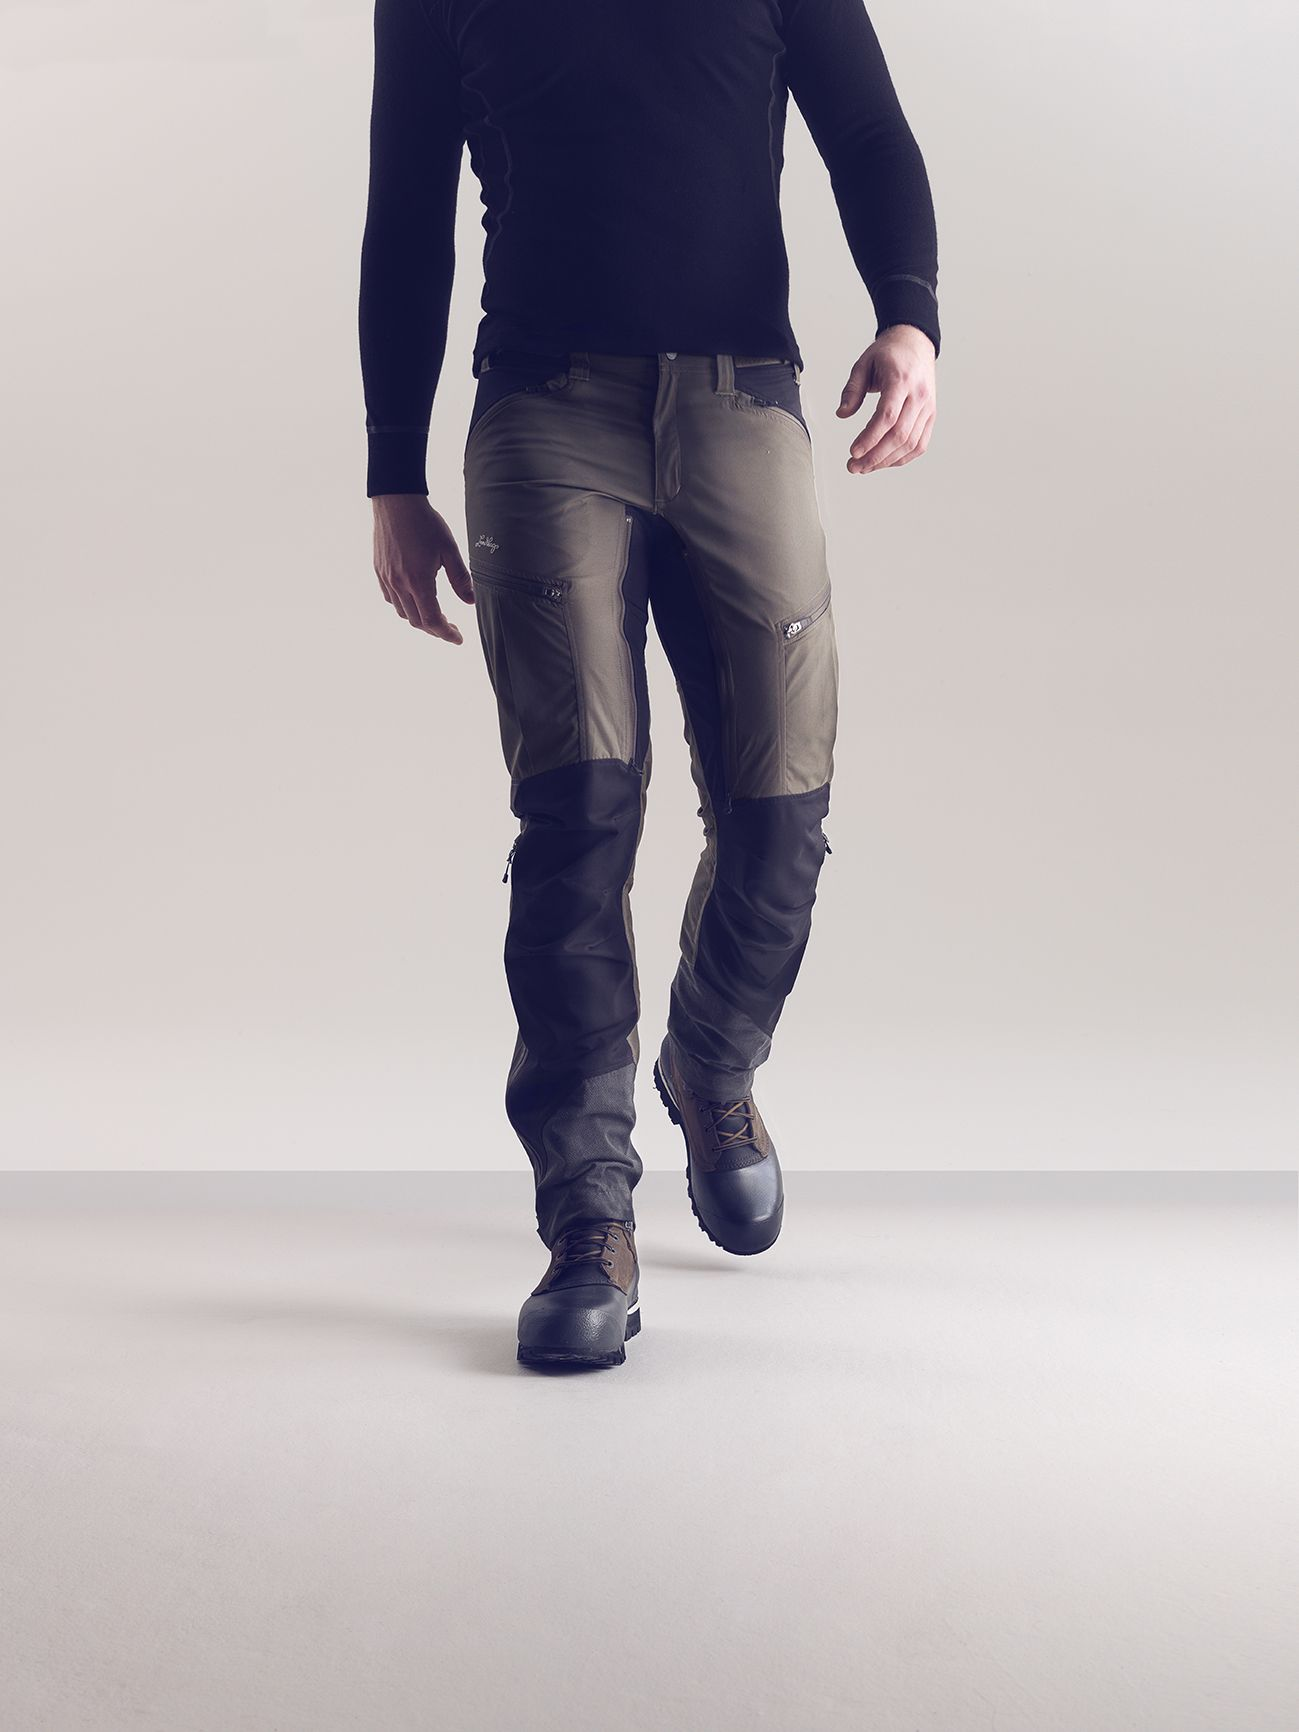 3bd7d780 Lundhags Makke Pant. A lightweight, full-function trekking pant with a slim  fit